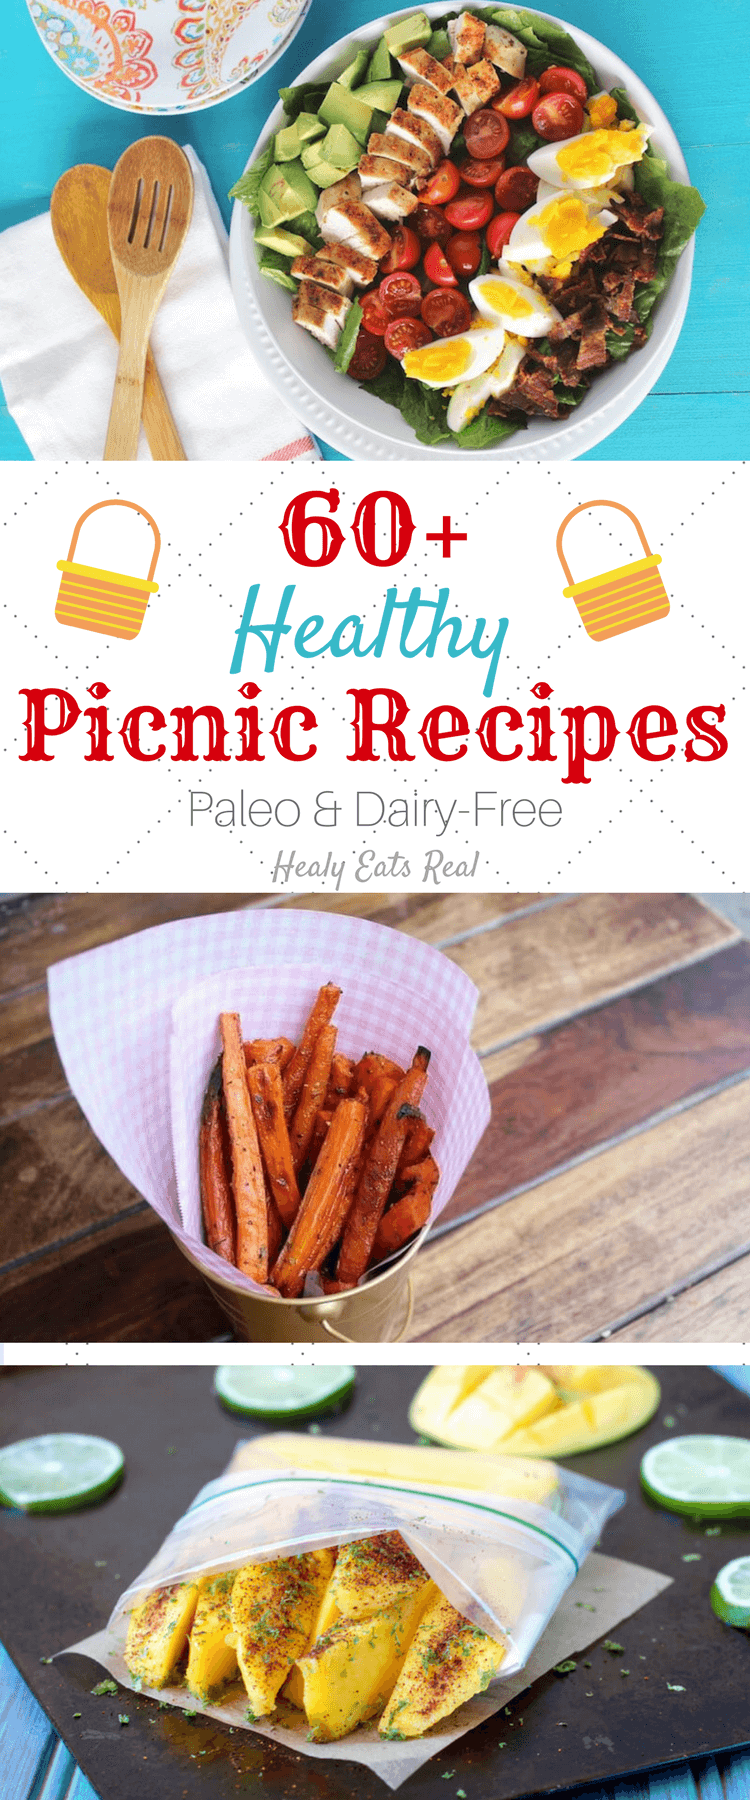 60+ Healthy Picnic Recipes (Paleo & Gluten-Free)- These healthy picnic recipes are all gluten free, dairy free and paleo. Each one of these delicious dishes is easy to pack up and take on-the-go for a perfect summer picnic!